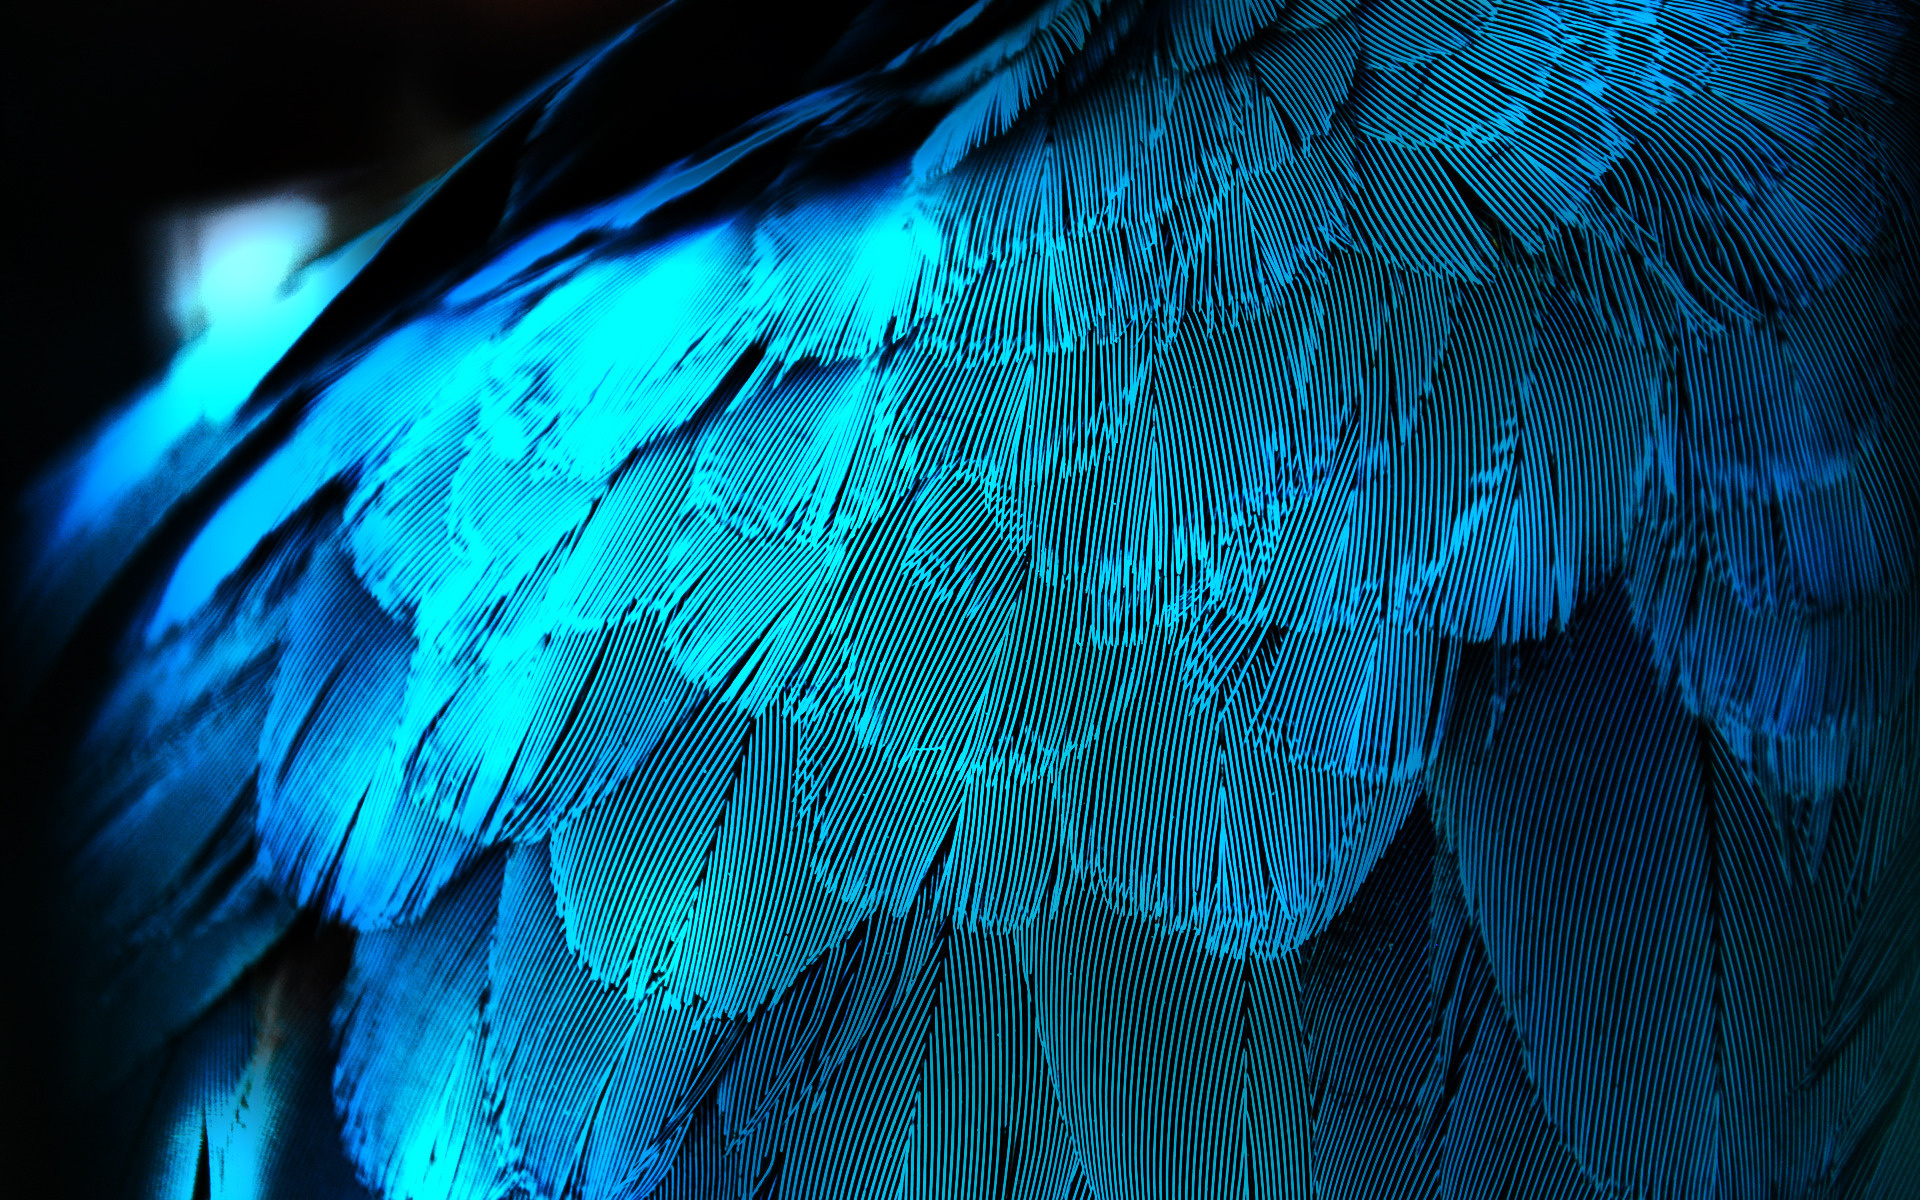 Blue Shade Wallpapers Blue Shades Feathers wallpaper